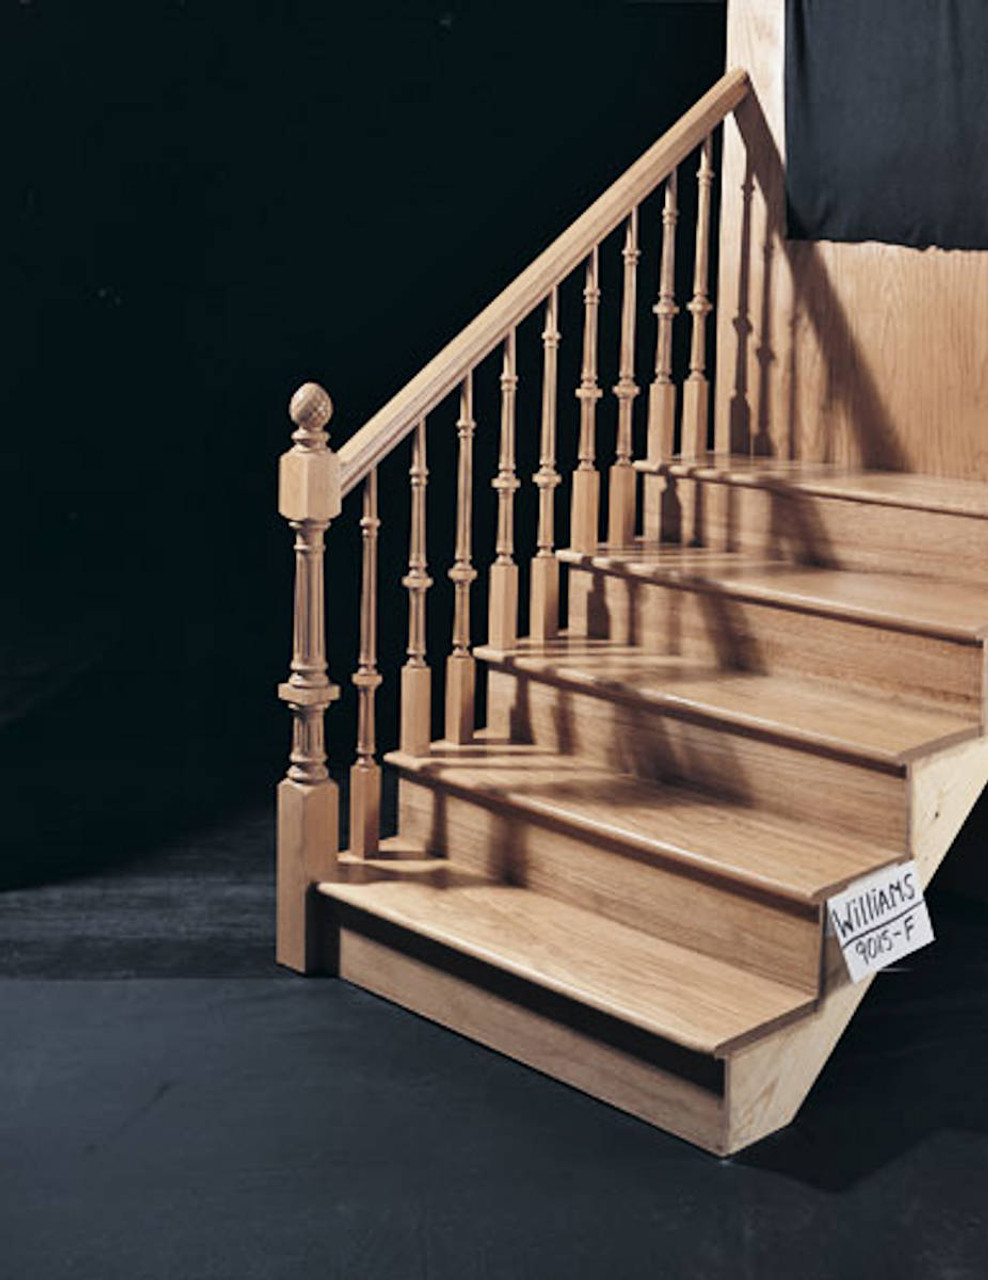 9015 Balusters with the 9043 Newel post 2